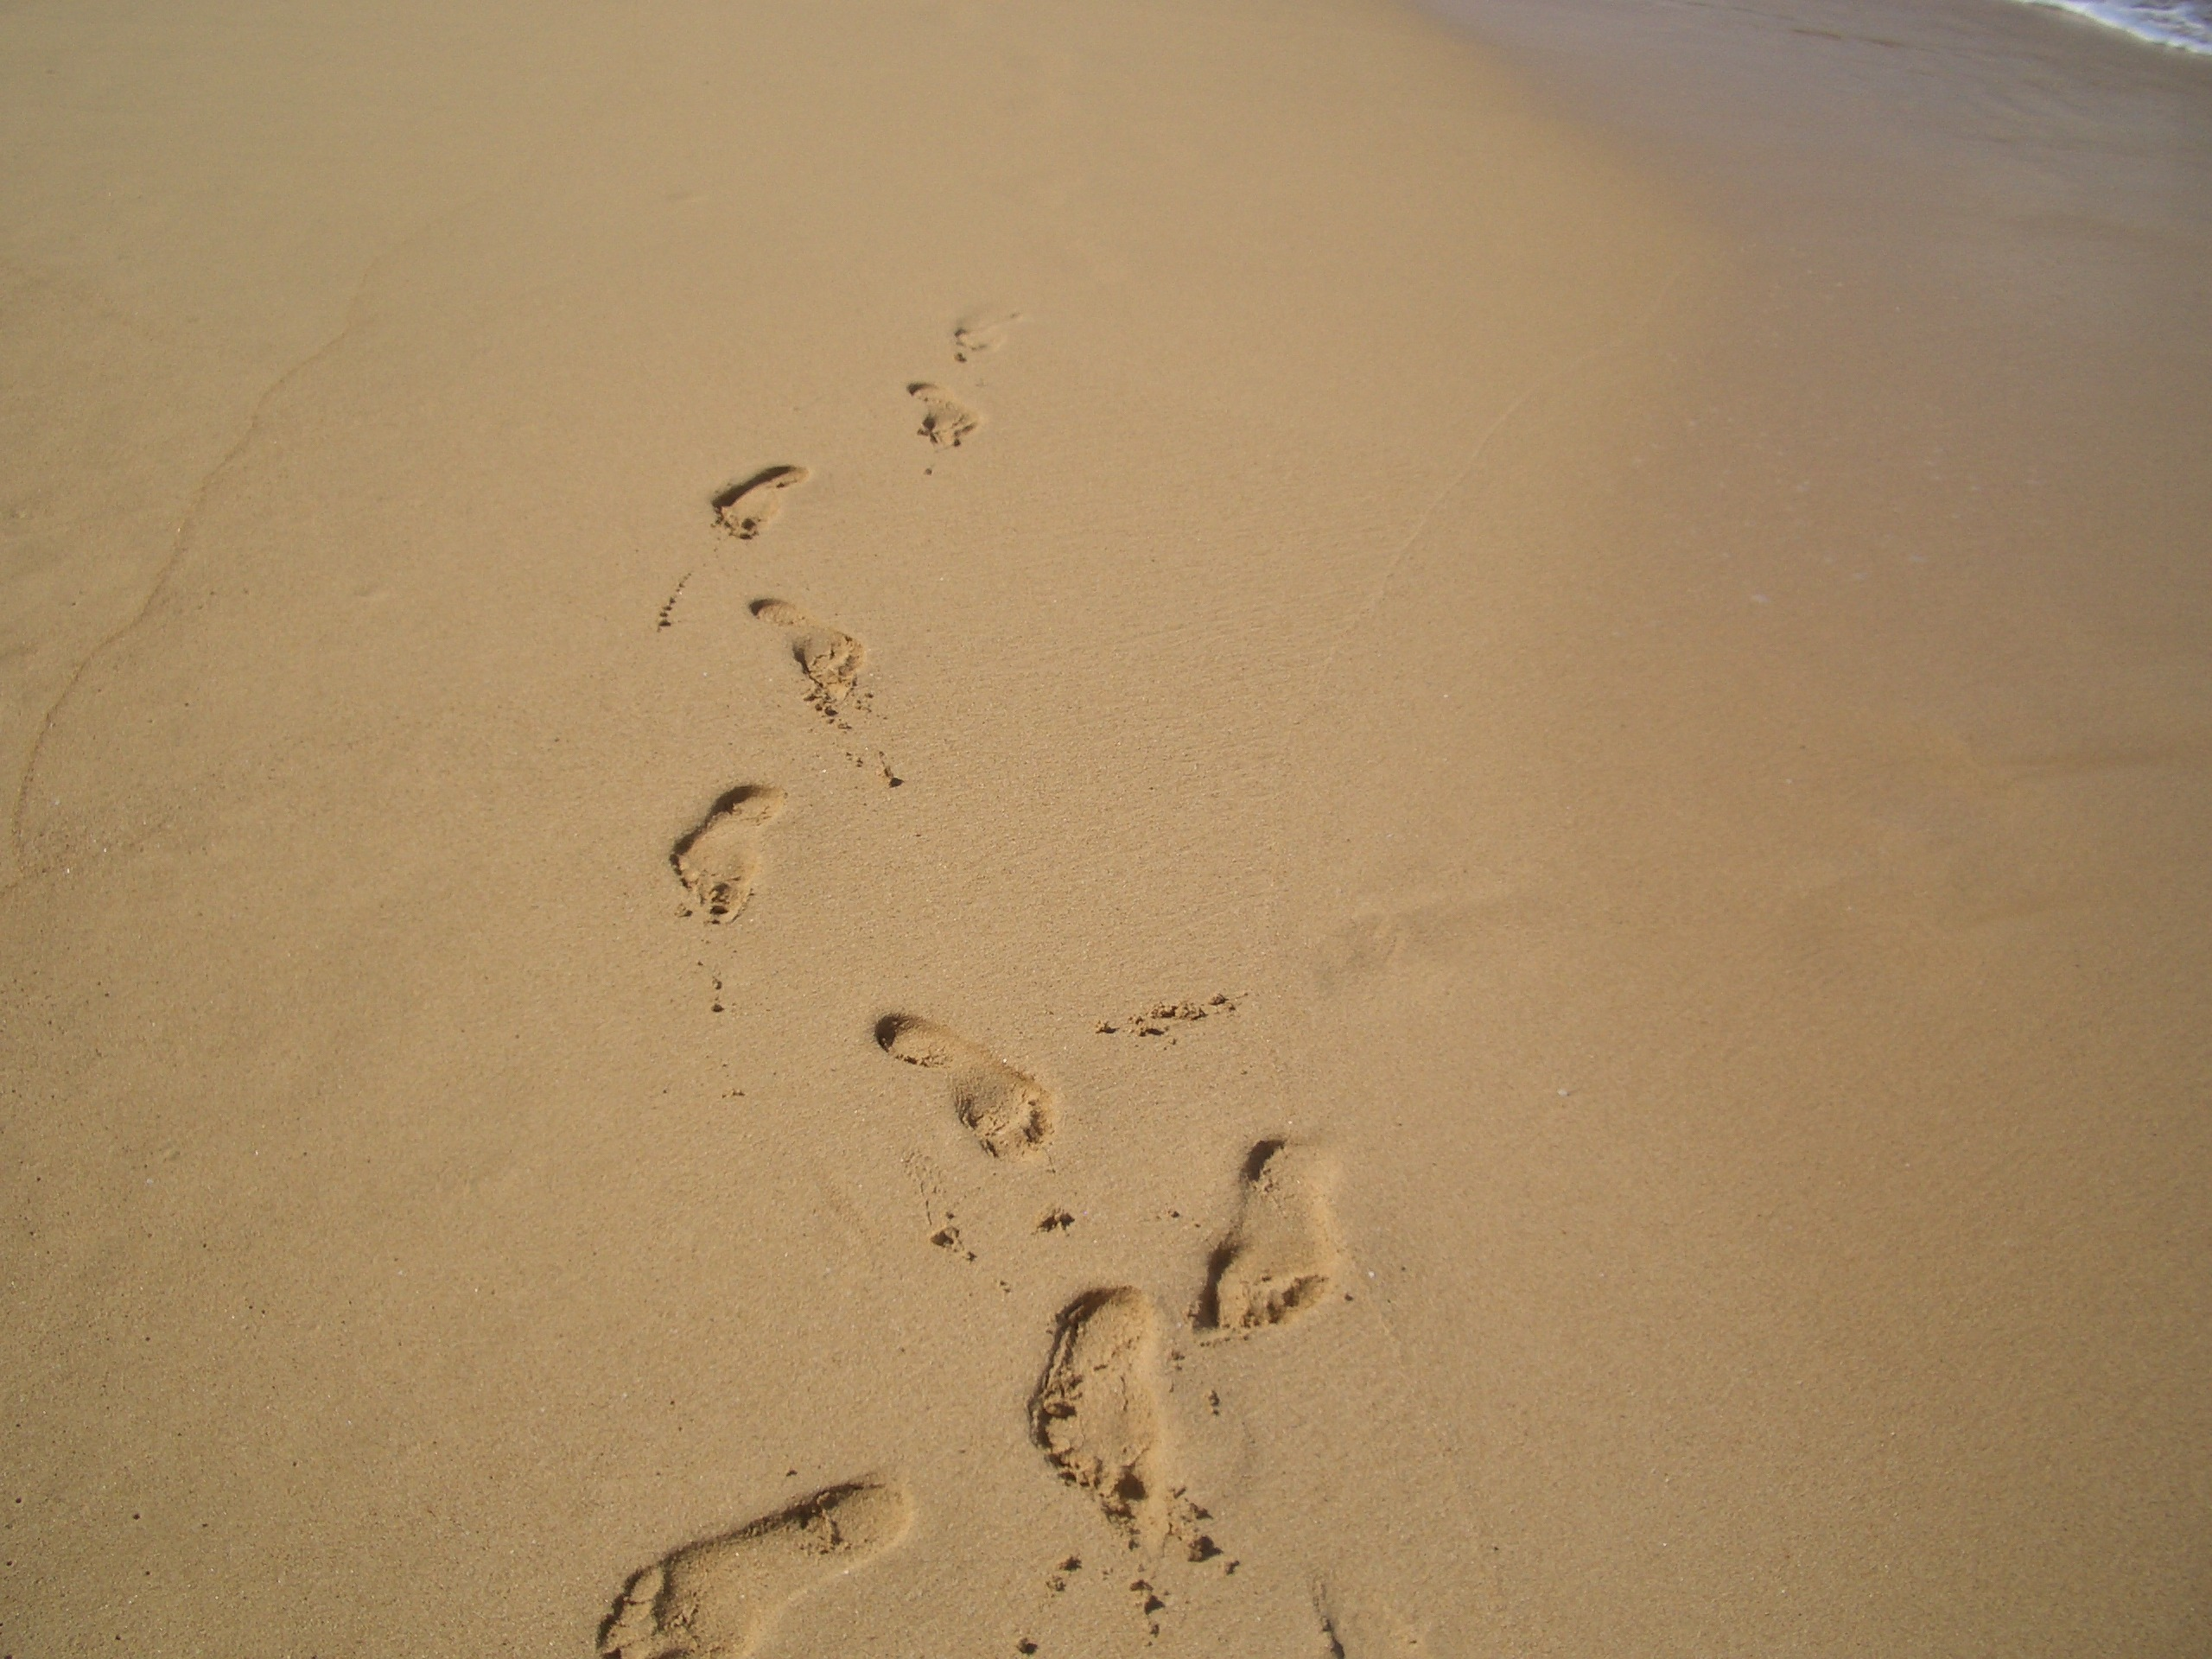 2560x1920 Free Images Beach, Coast, Path, Outdoor, Sand, Wing, Wood, Track